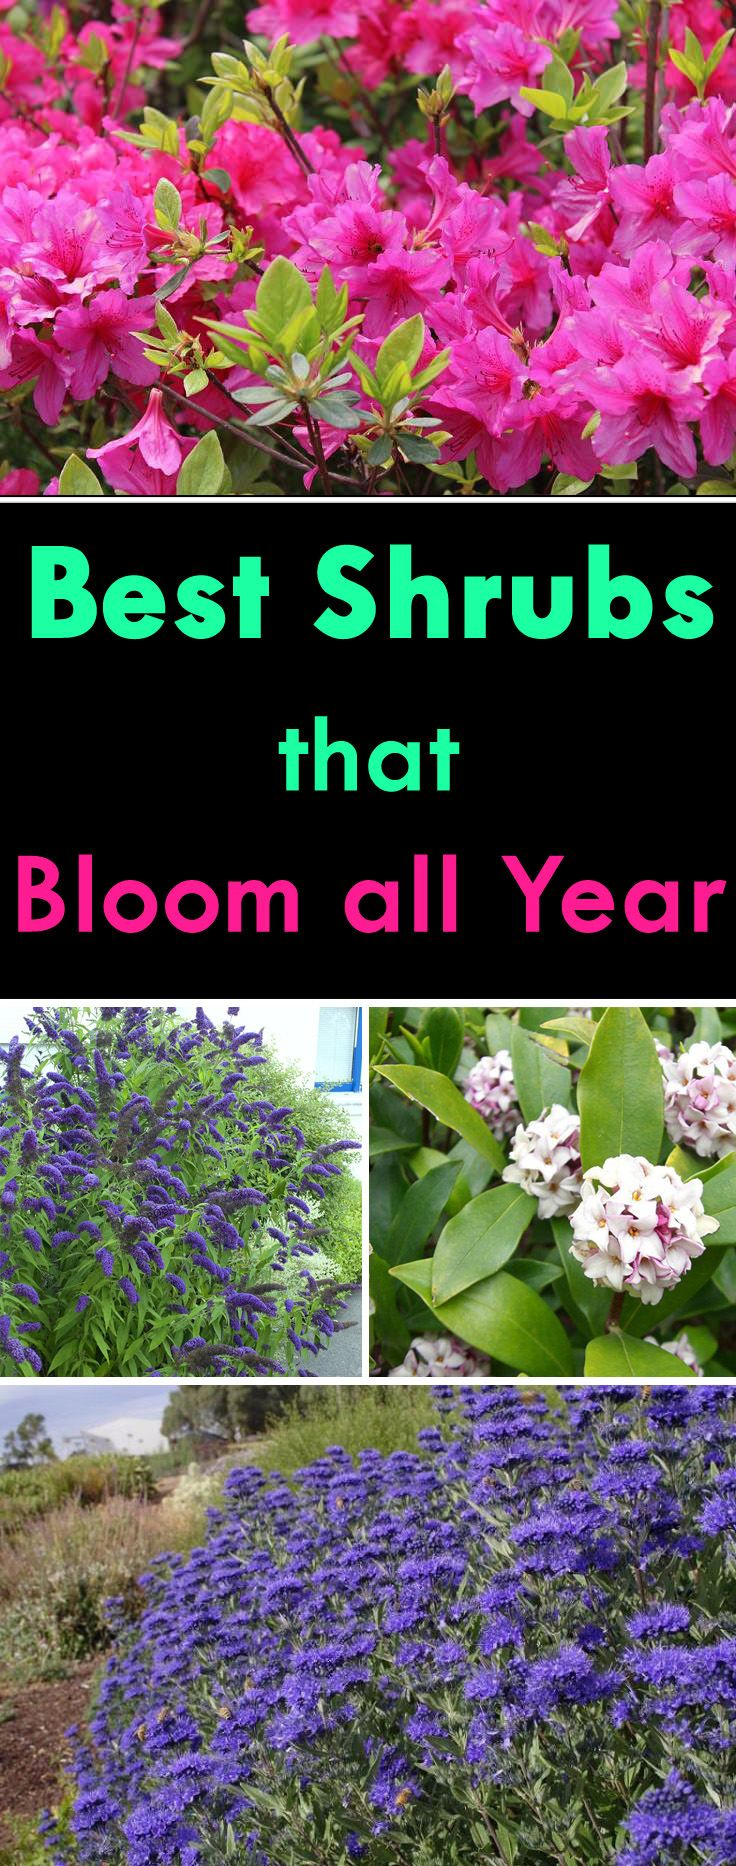 Best Shrubs That Bloom All Year